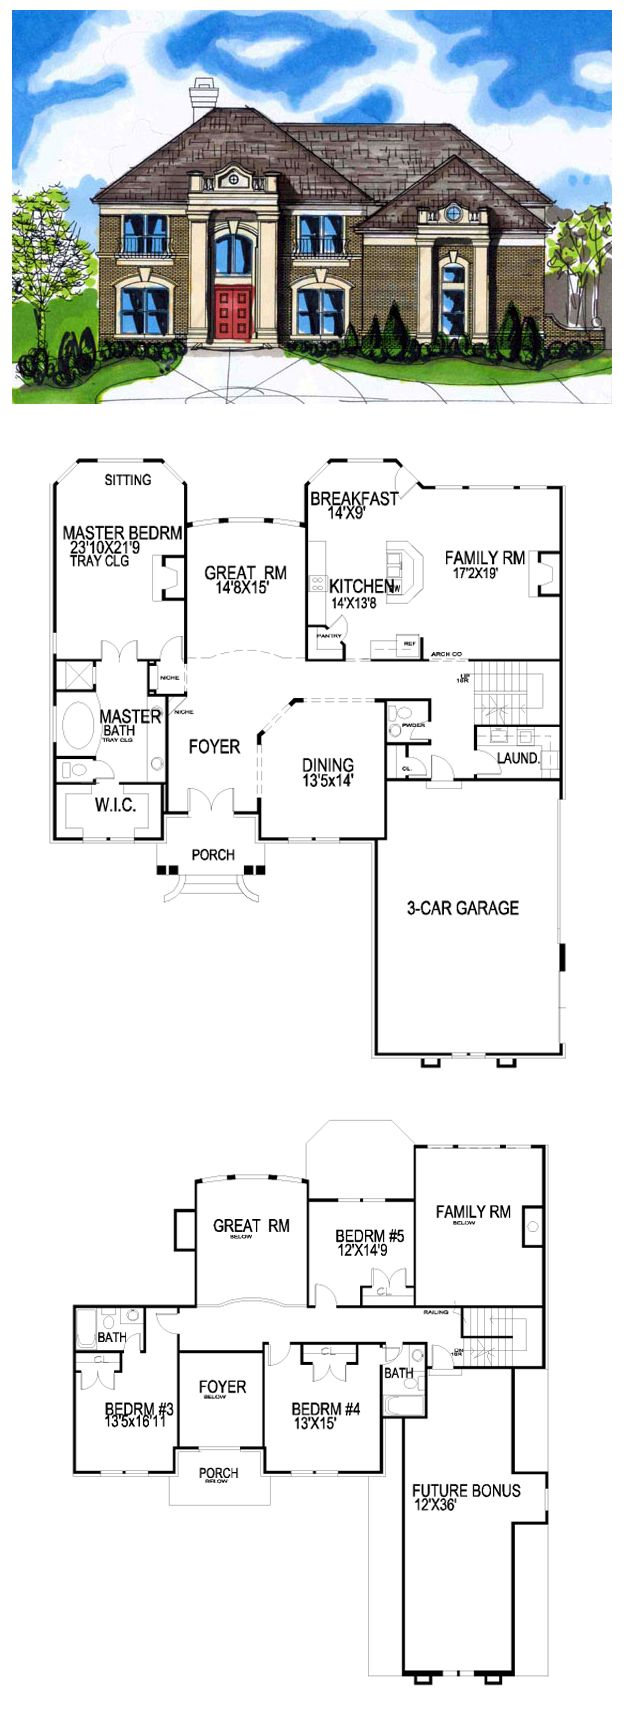 1000 Images About Greek Revival House Plans On Pinterest 3 Car Garage Huge Closet And The Family